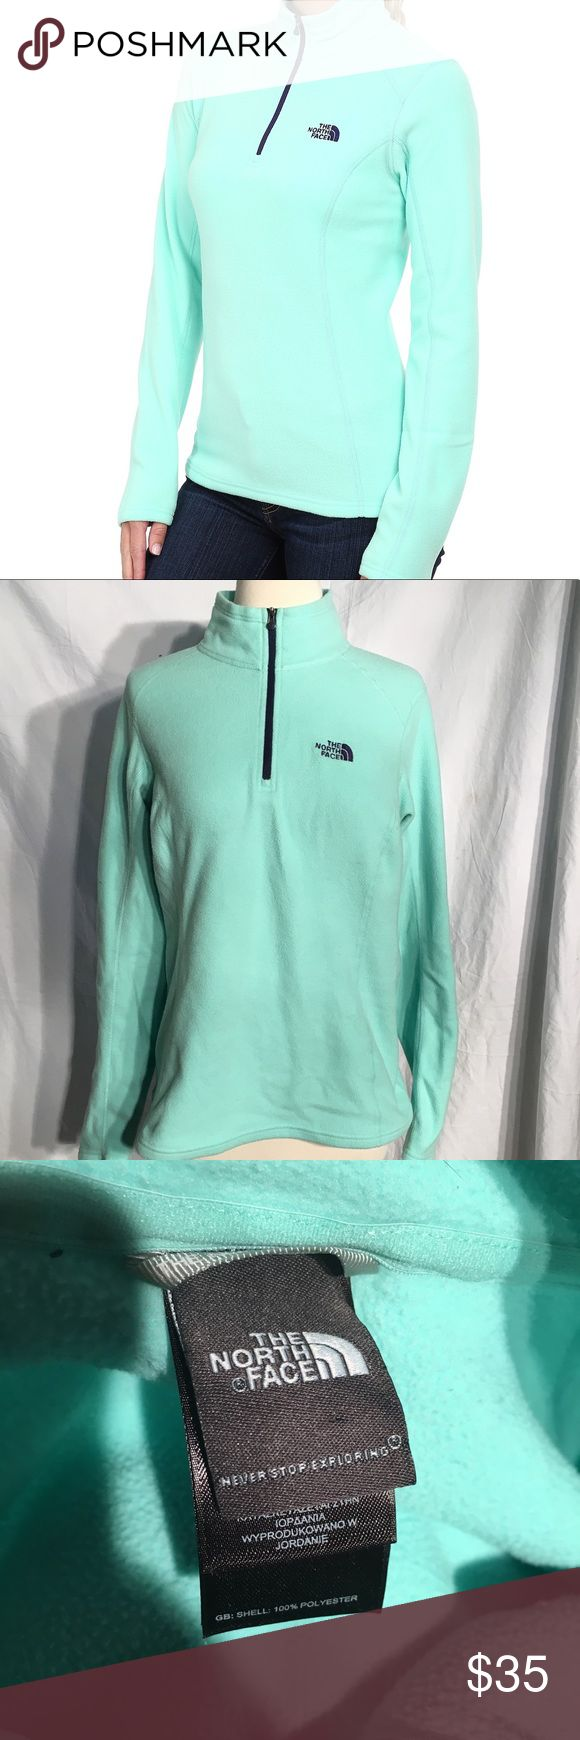 🦄 The North Face green glacier 1/4 zip up Great condition The North Face Glacier 1/4 zip up pull over jacket  THIS ITEM IS NOT PART OF SALE!   Offers are welcome! The North Face Sweaters